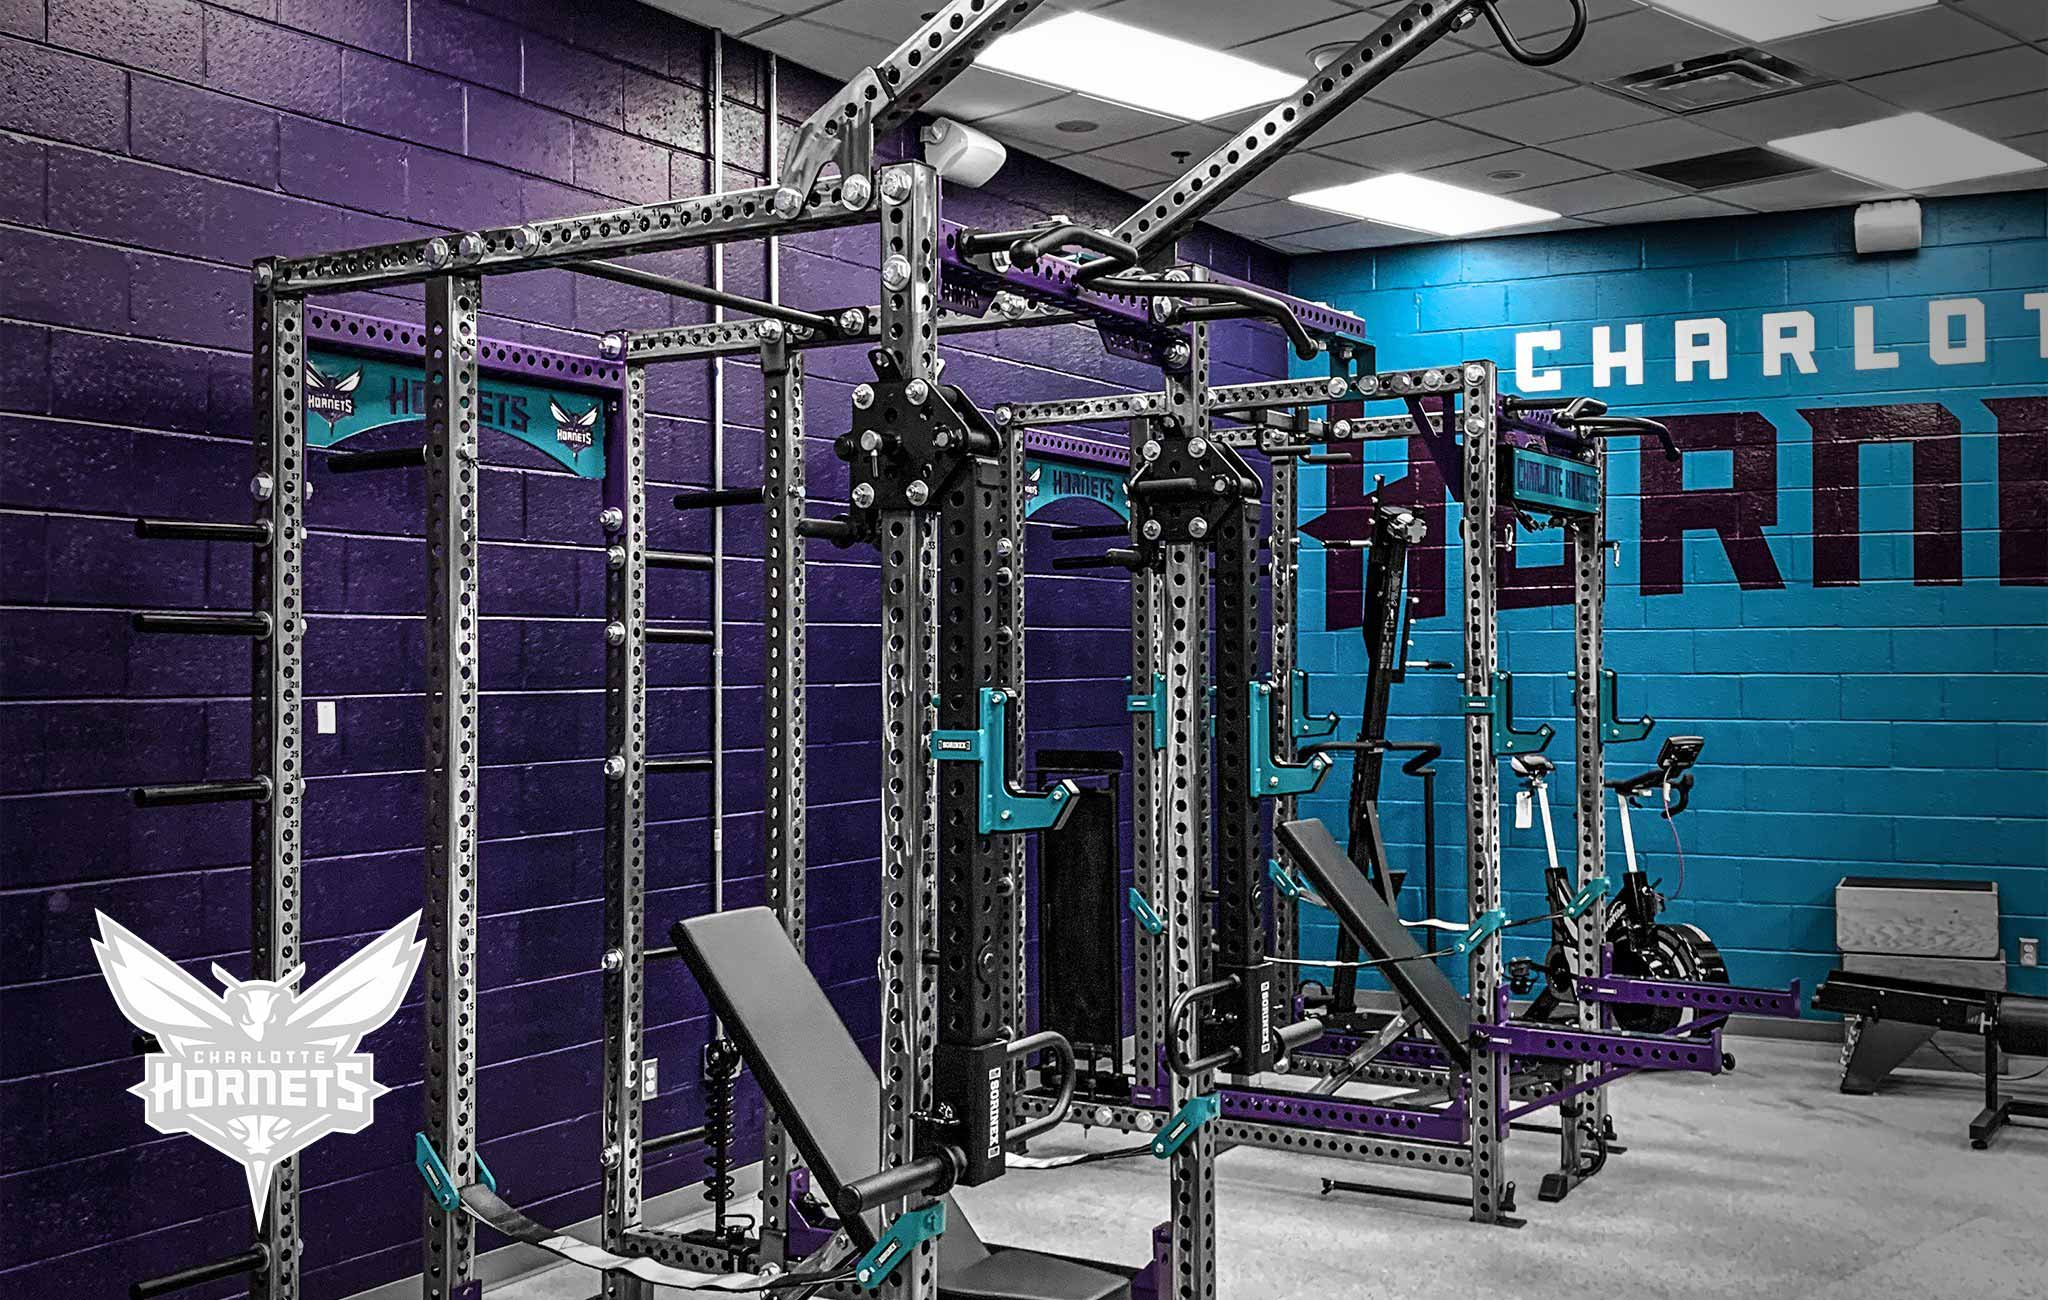 Charlotte Hornets Sorinex strength and conditioning facility